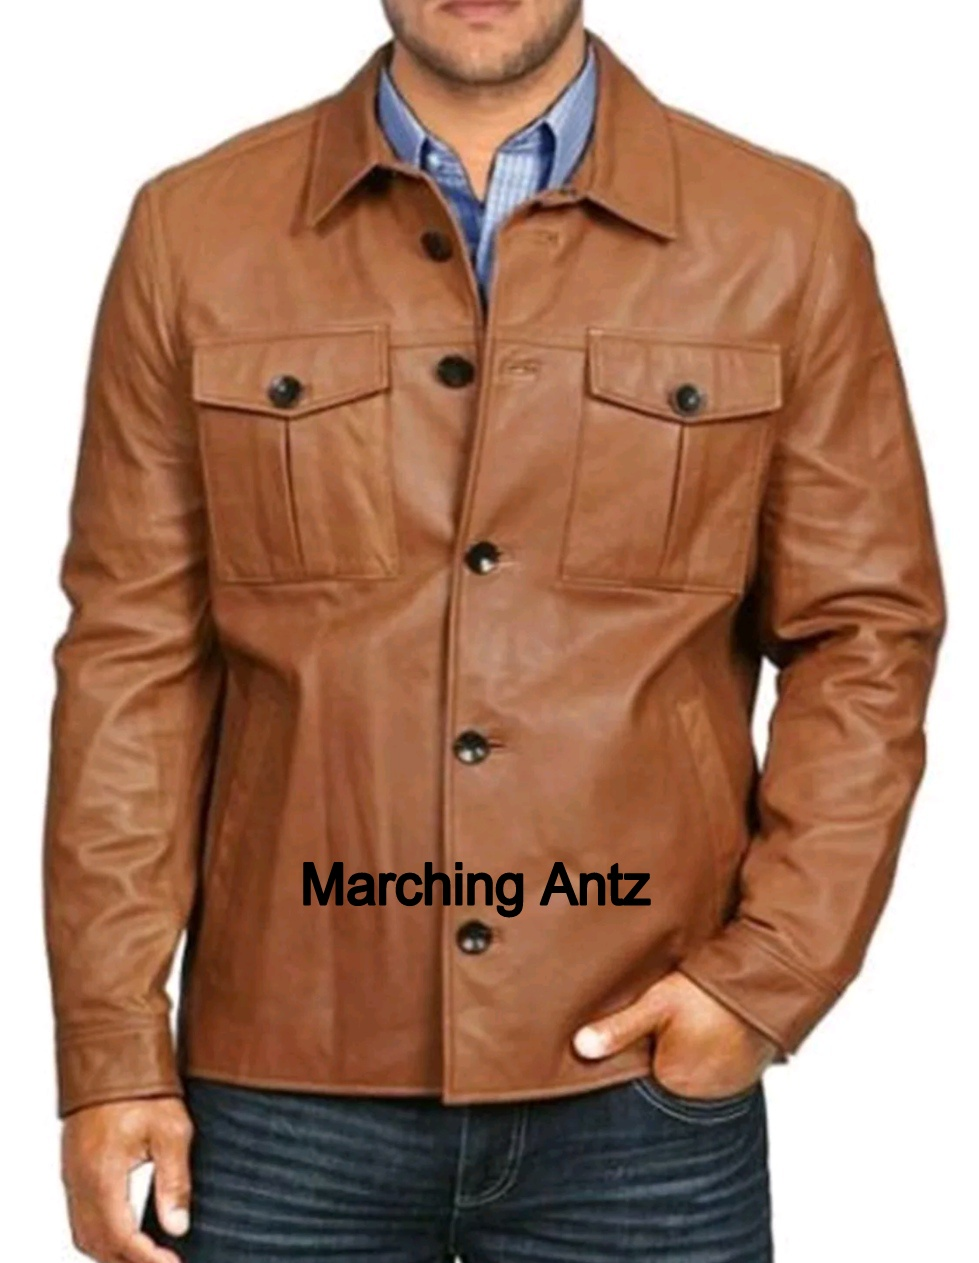 marching-antz-tan